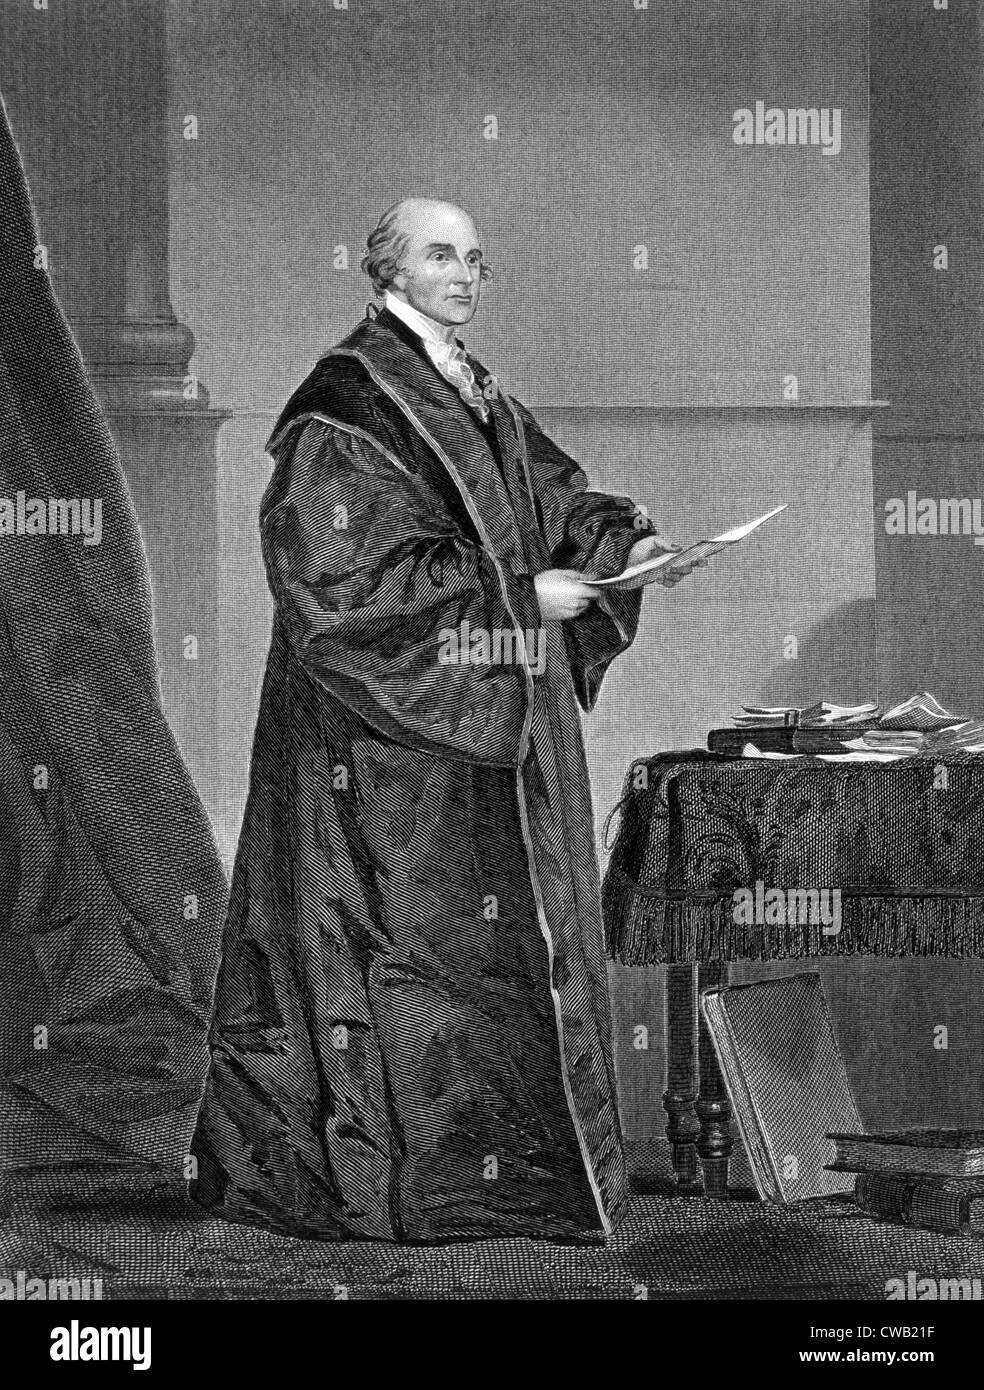 John Jay (1745-1829), first U.S. Supreme Court Chief Justice (1789-1795), engraving 1858 - Stock Image